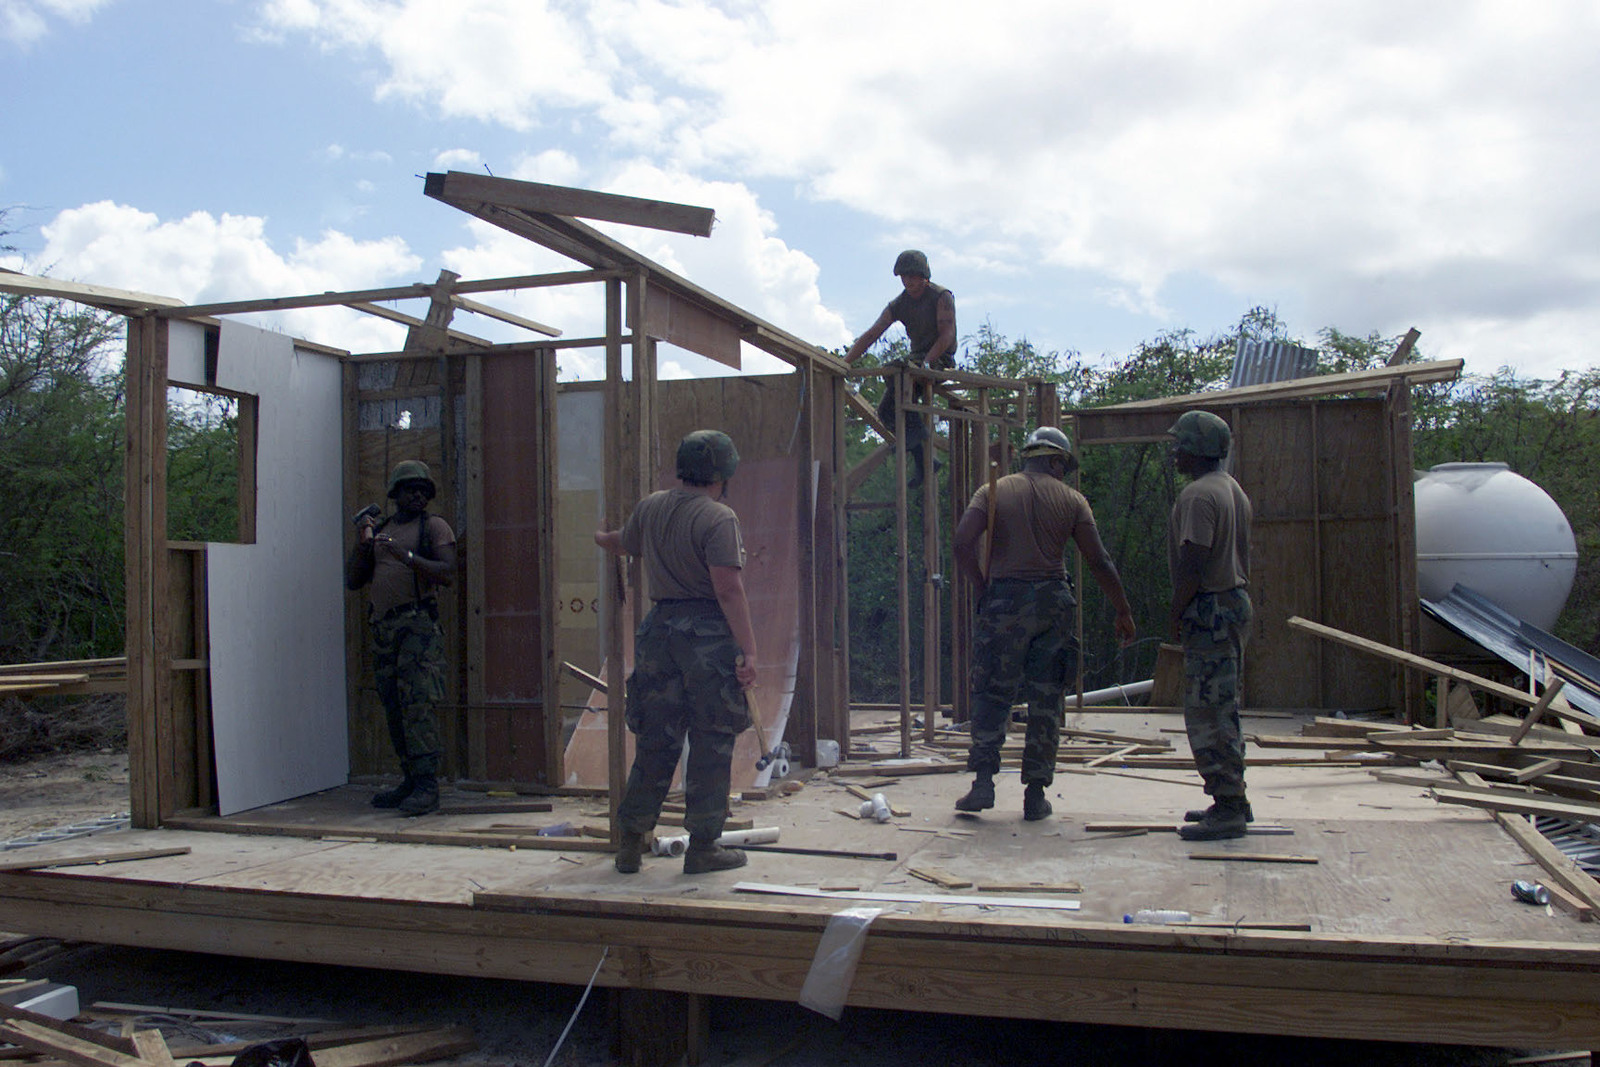 US Navy (USN) Seabees assigned to Naval Mobile Construction Battalion Five (NMCB-5) disassembles structures built by trespassers on federal property, at Camp Garcia on Vieques Island, Puerto Rico, as US Military and Department of Justice agents reclaimed the federal property on which protestors were residing for over a year